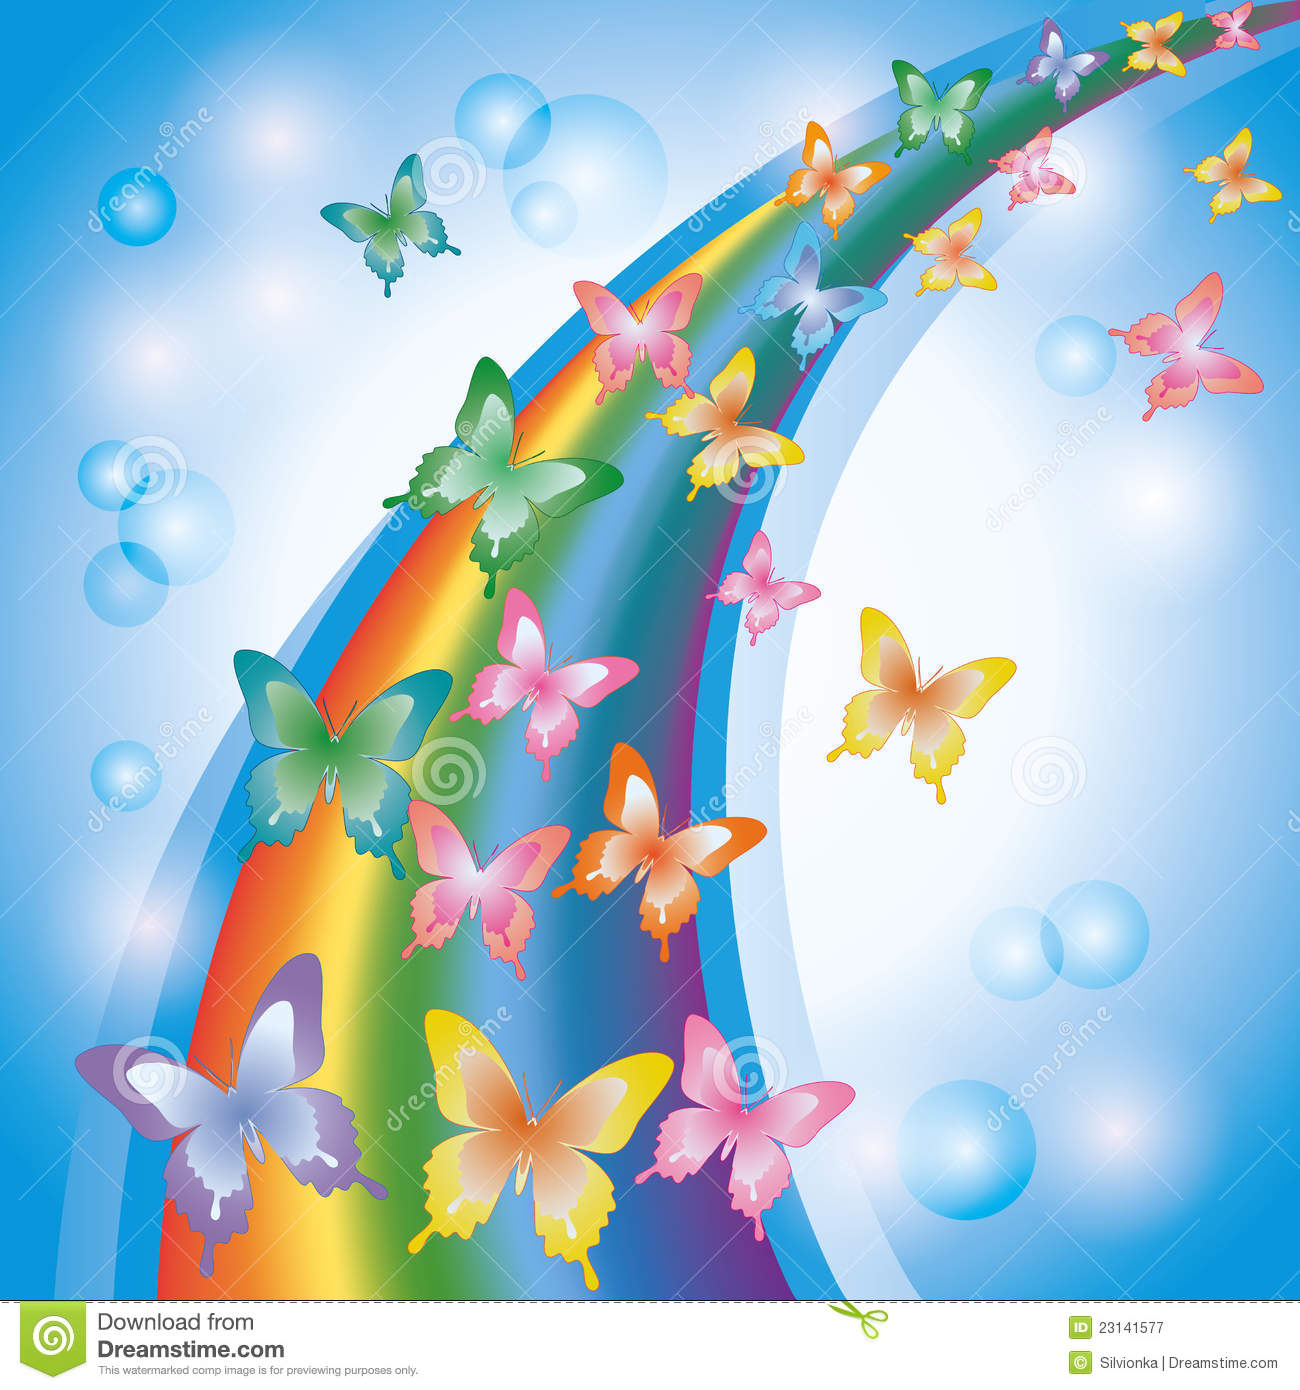 Royalty Free Stock Photography: Colorful background with rainbow and ...